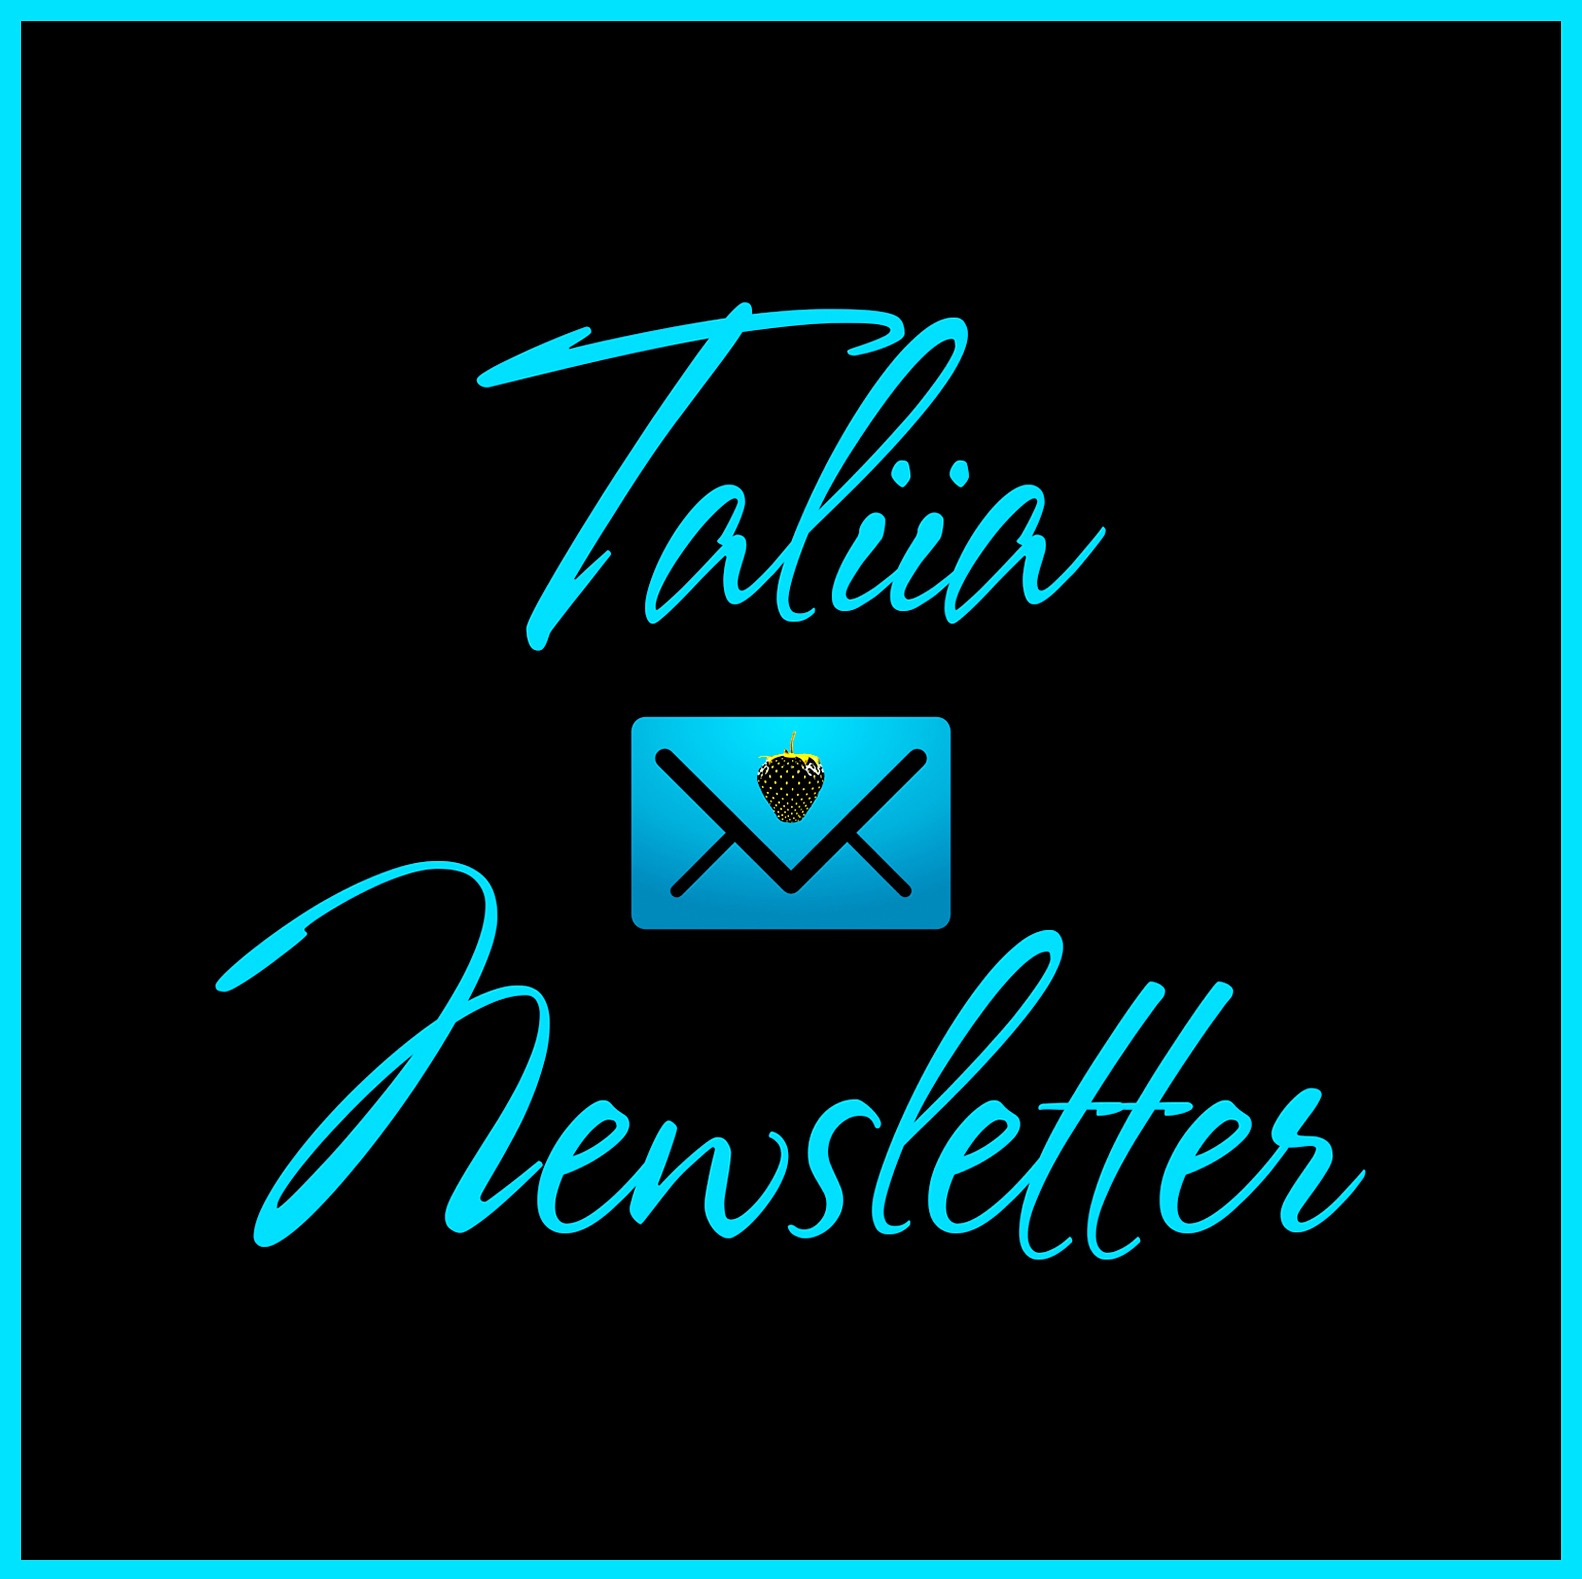 Taliia Newsletter